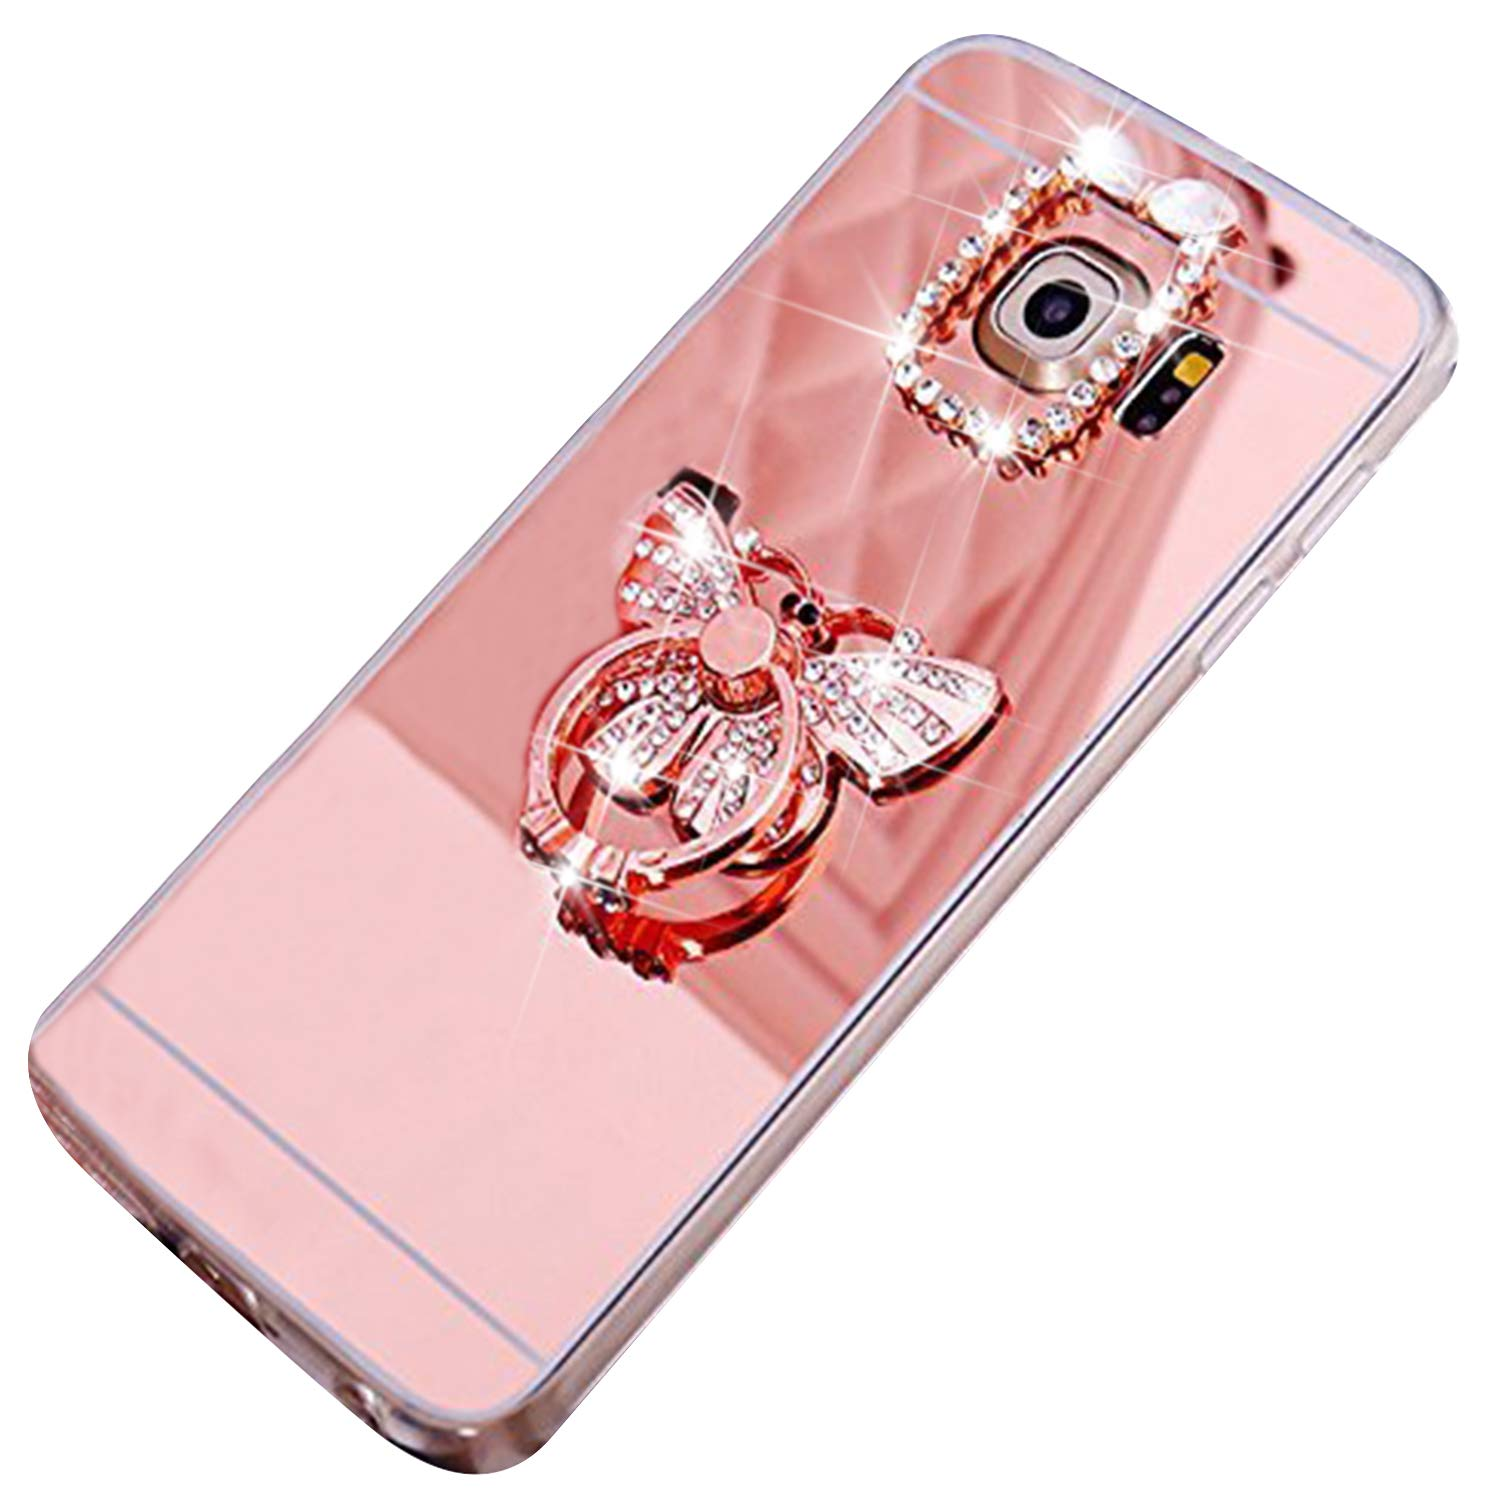 Coque Galaxy S6 Edge Plus, Coque Miroir pour Samsung Galaxy S6 Edge Plus, Ekakashop Ultra Mince Luxe Bling Bling Gliter Sparkle Couronne D'or Coque de Protection en TPU Silicone Crystal Clair Souple Gel Housse Coque Protecteur Back Cover Defender Bumper av